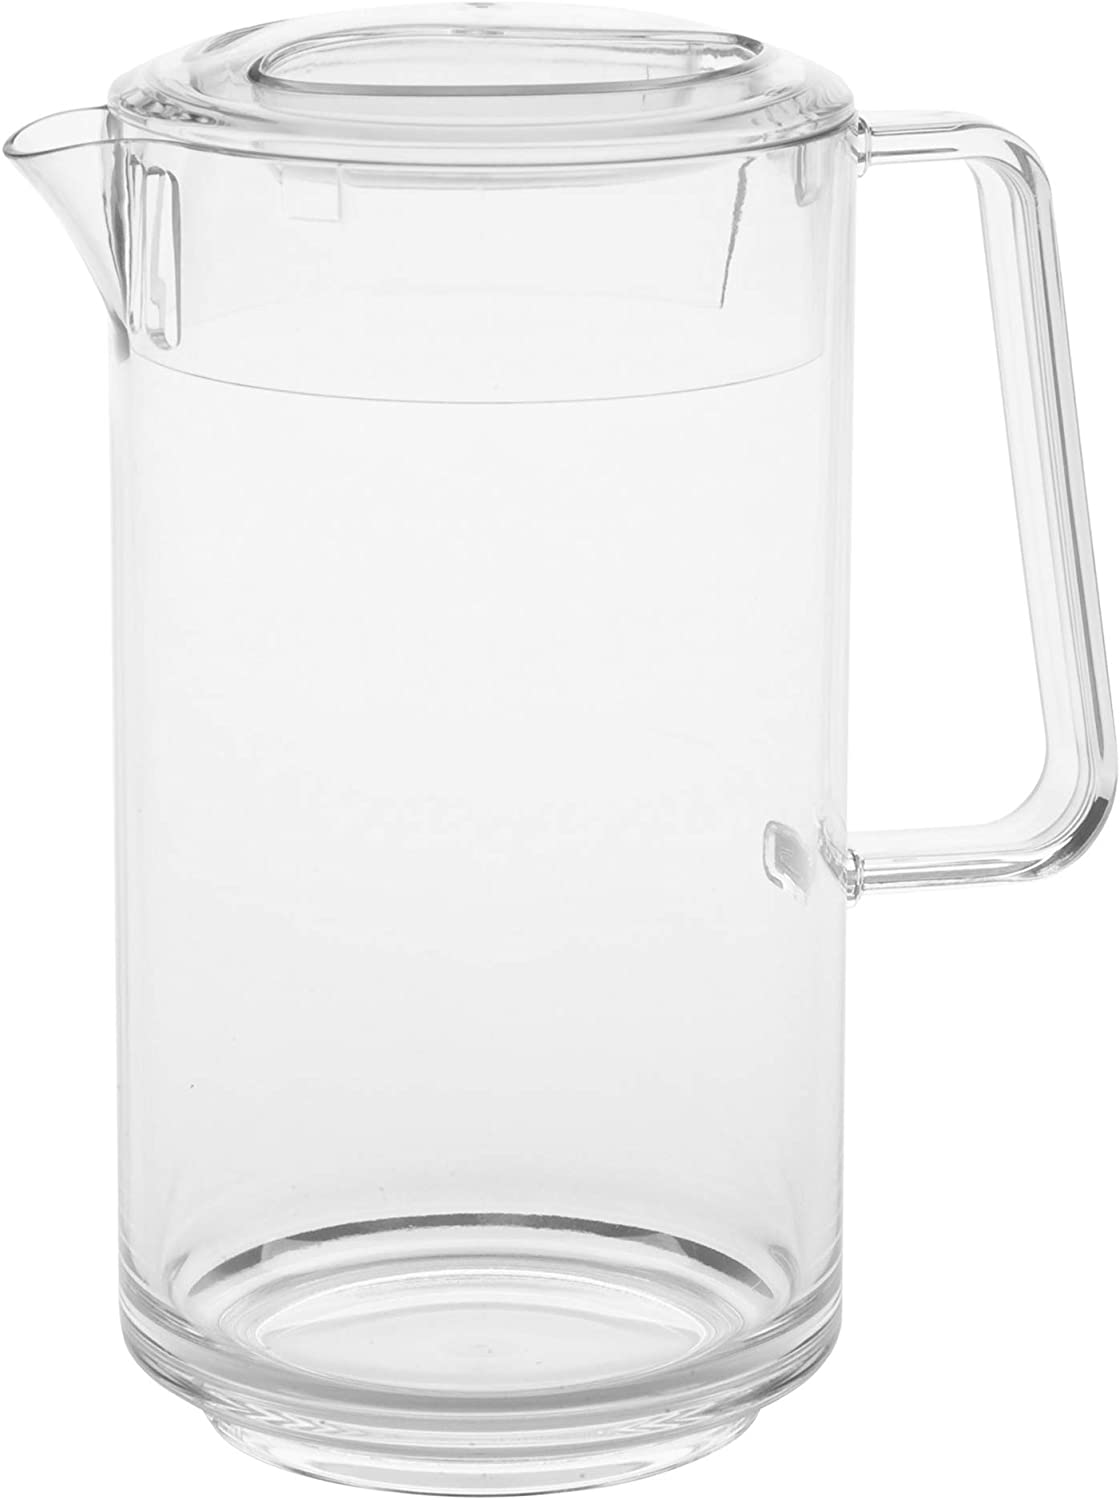 Zak Tabletime 2 quart Water Pitcher, Clear slideshow image 2